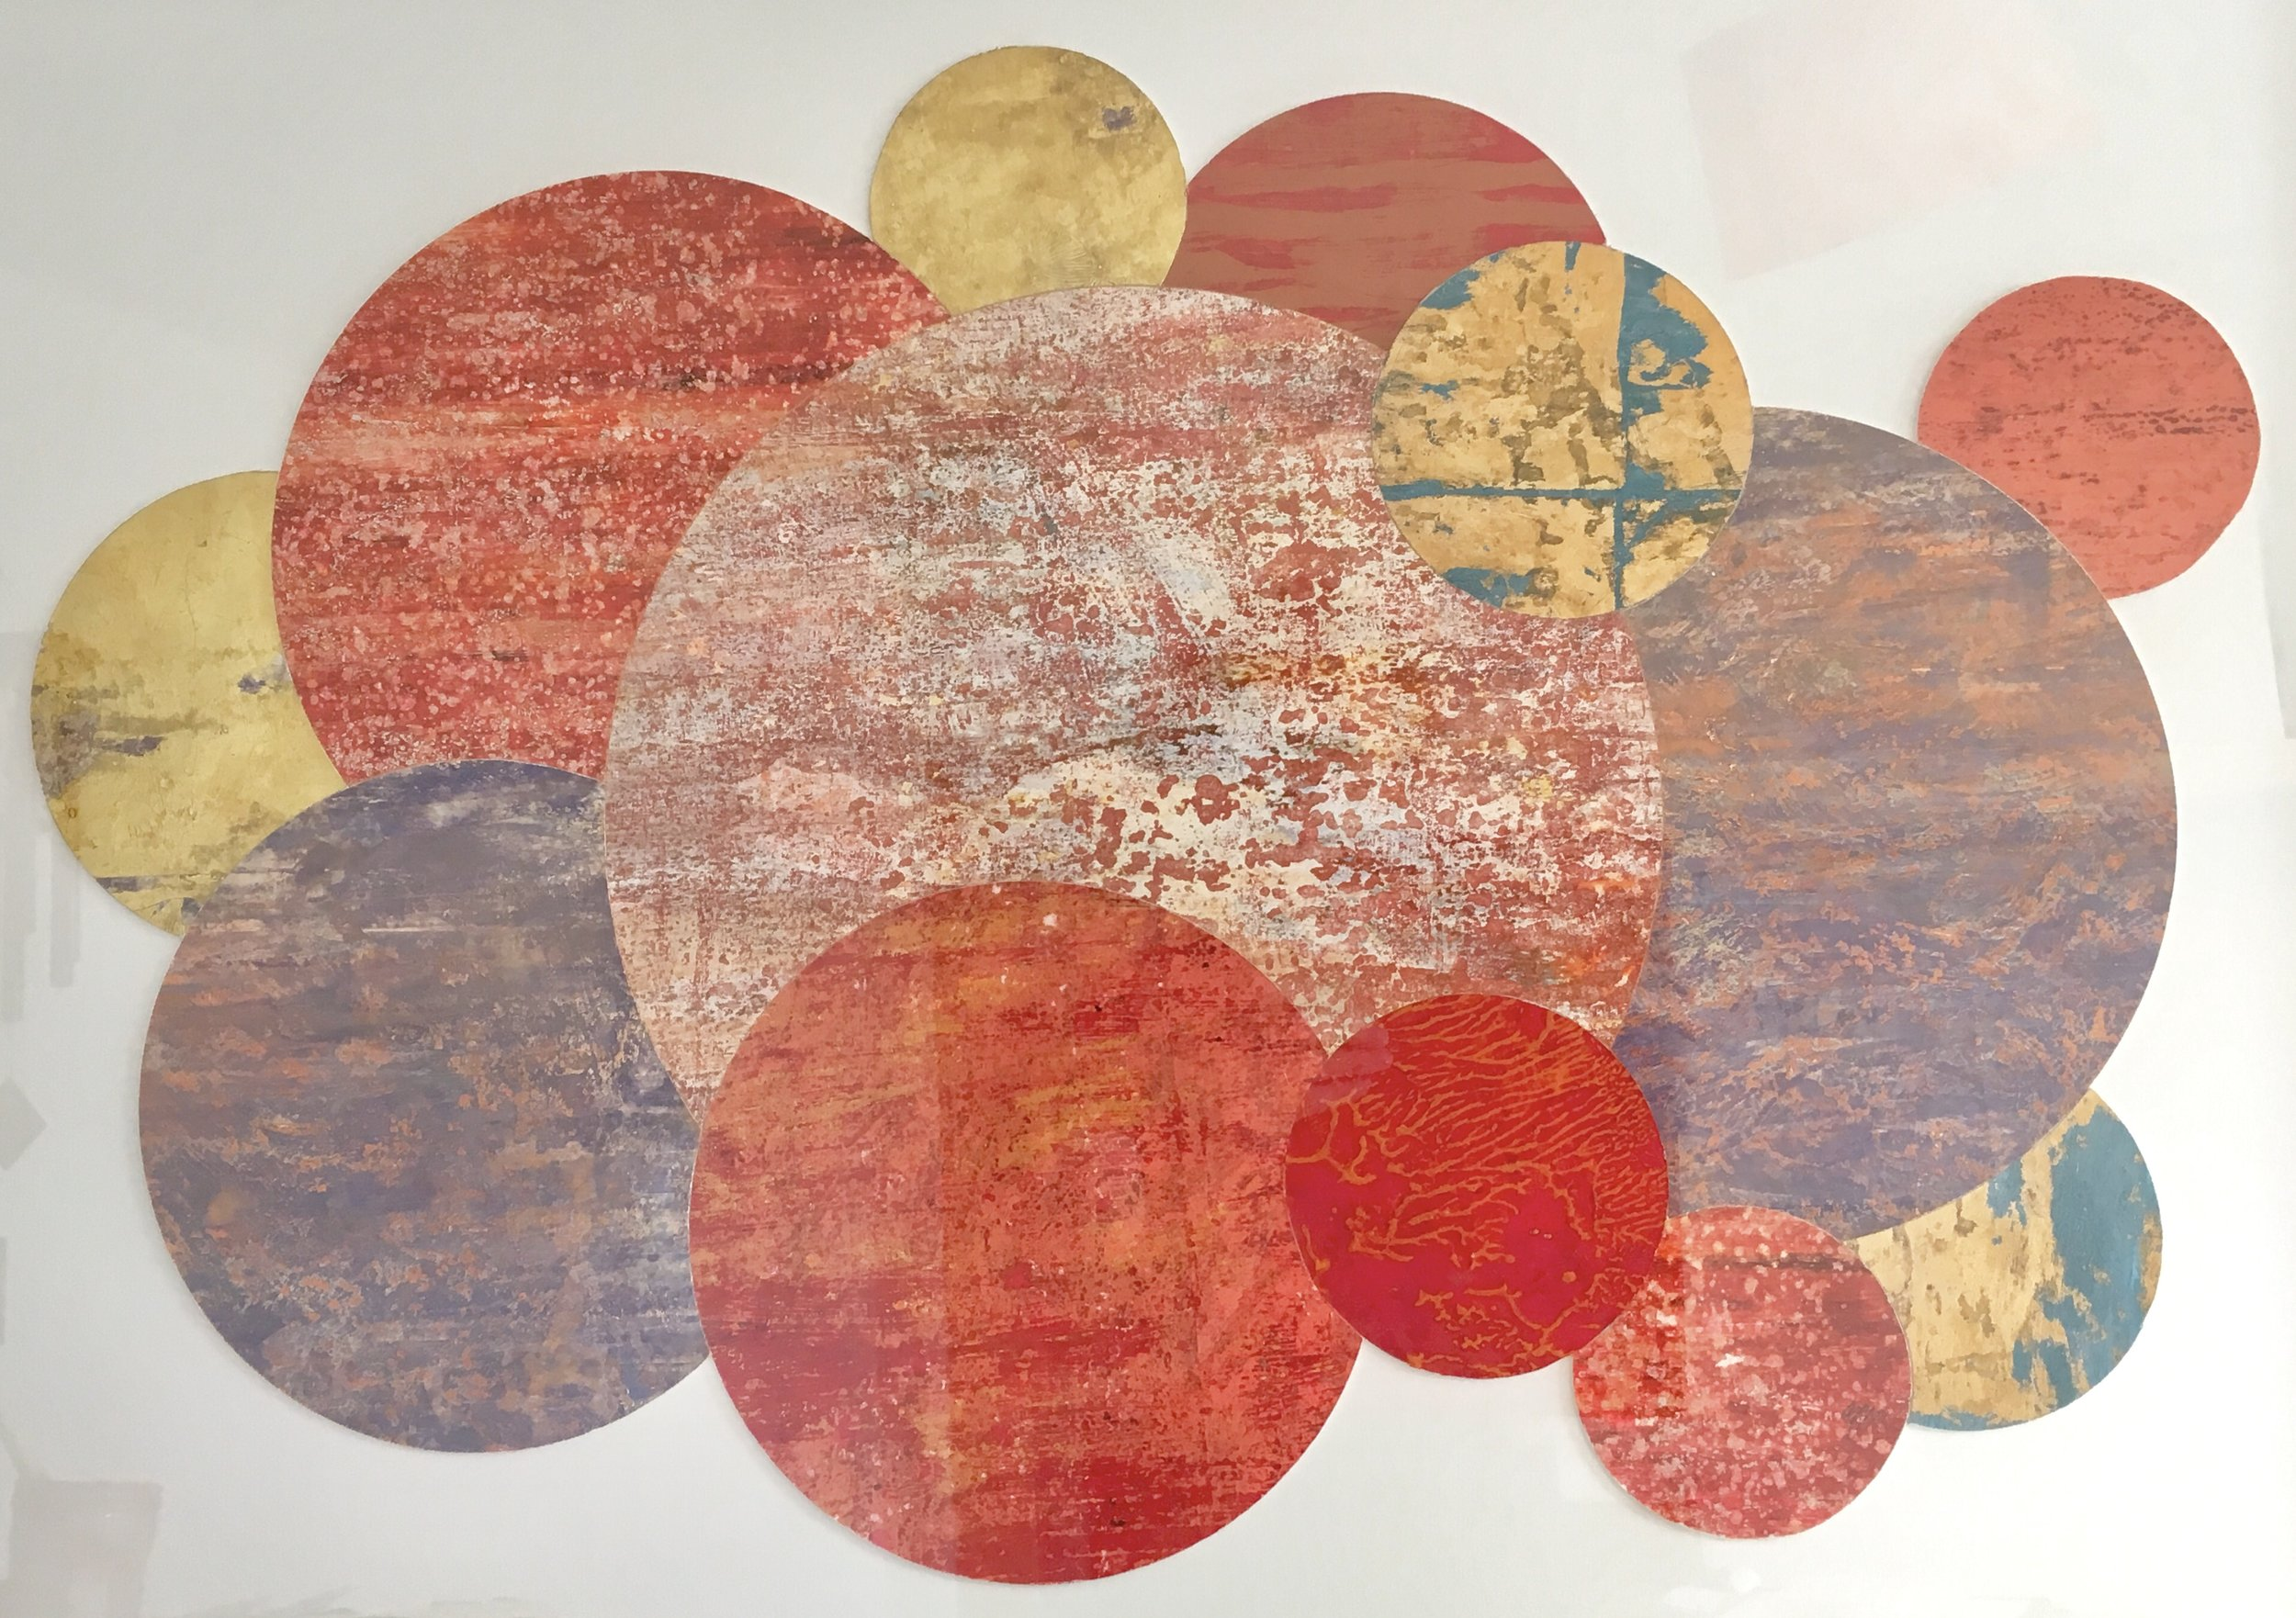 Artist: Alan McLeod  Title: Family of Planets  Size: 58 x 79 cm  Medium: Gouache and metal leaf on paper  Price: £680